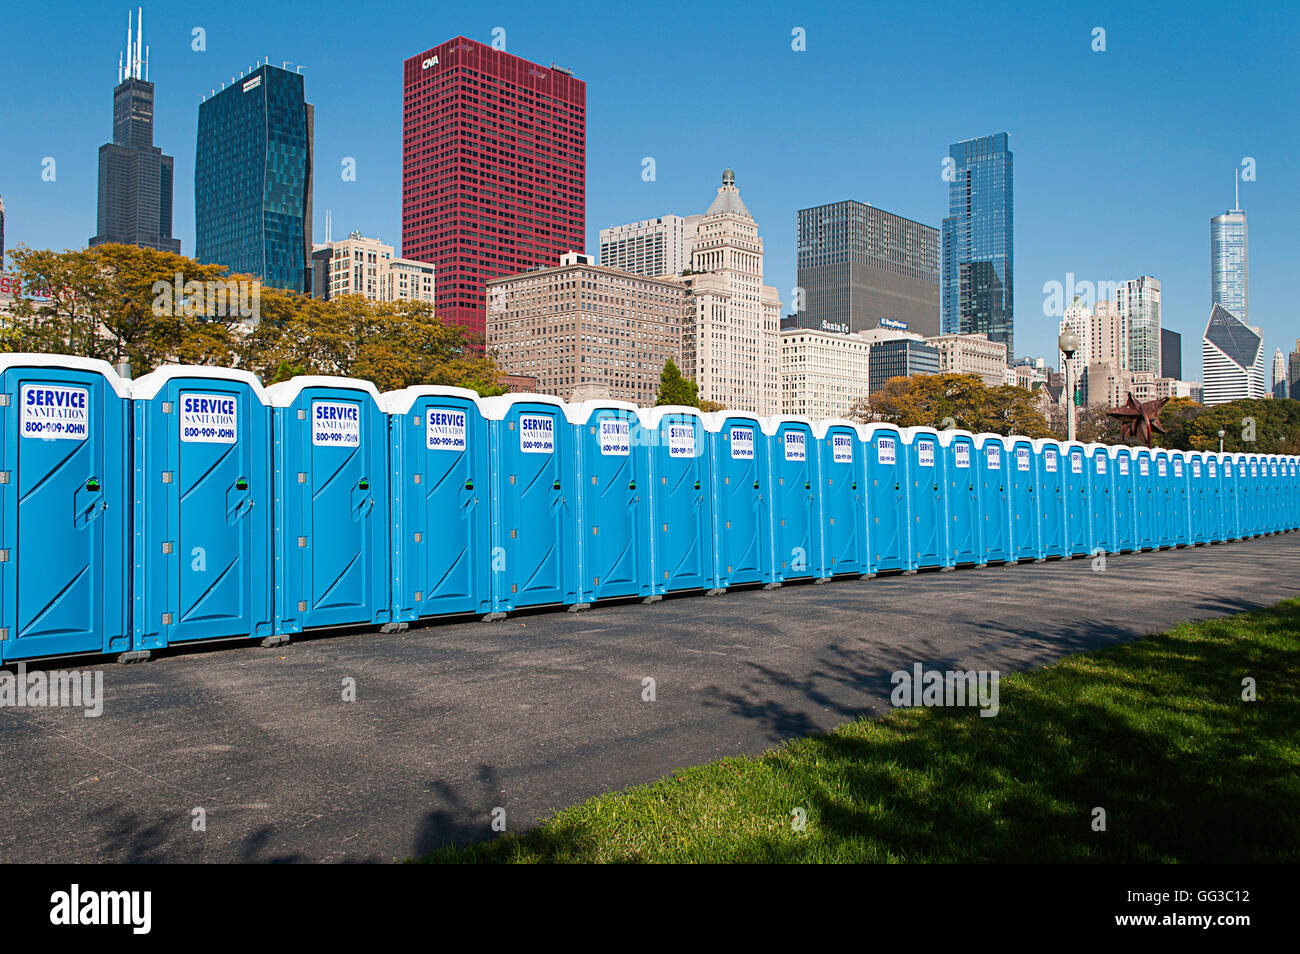 Port-o-potties lined up in Grant Park for the Chicago marathon. - Stock Image